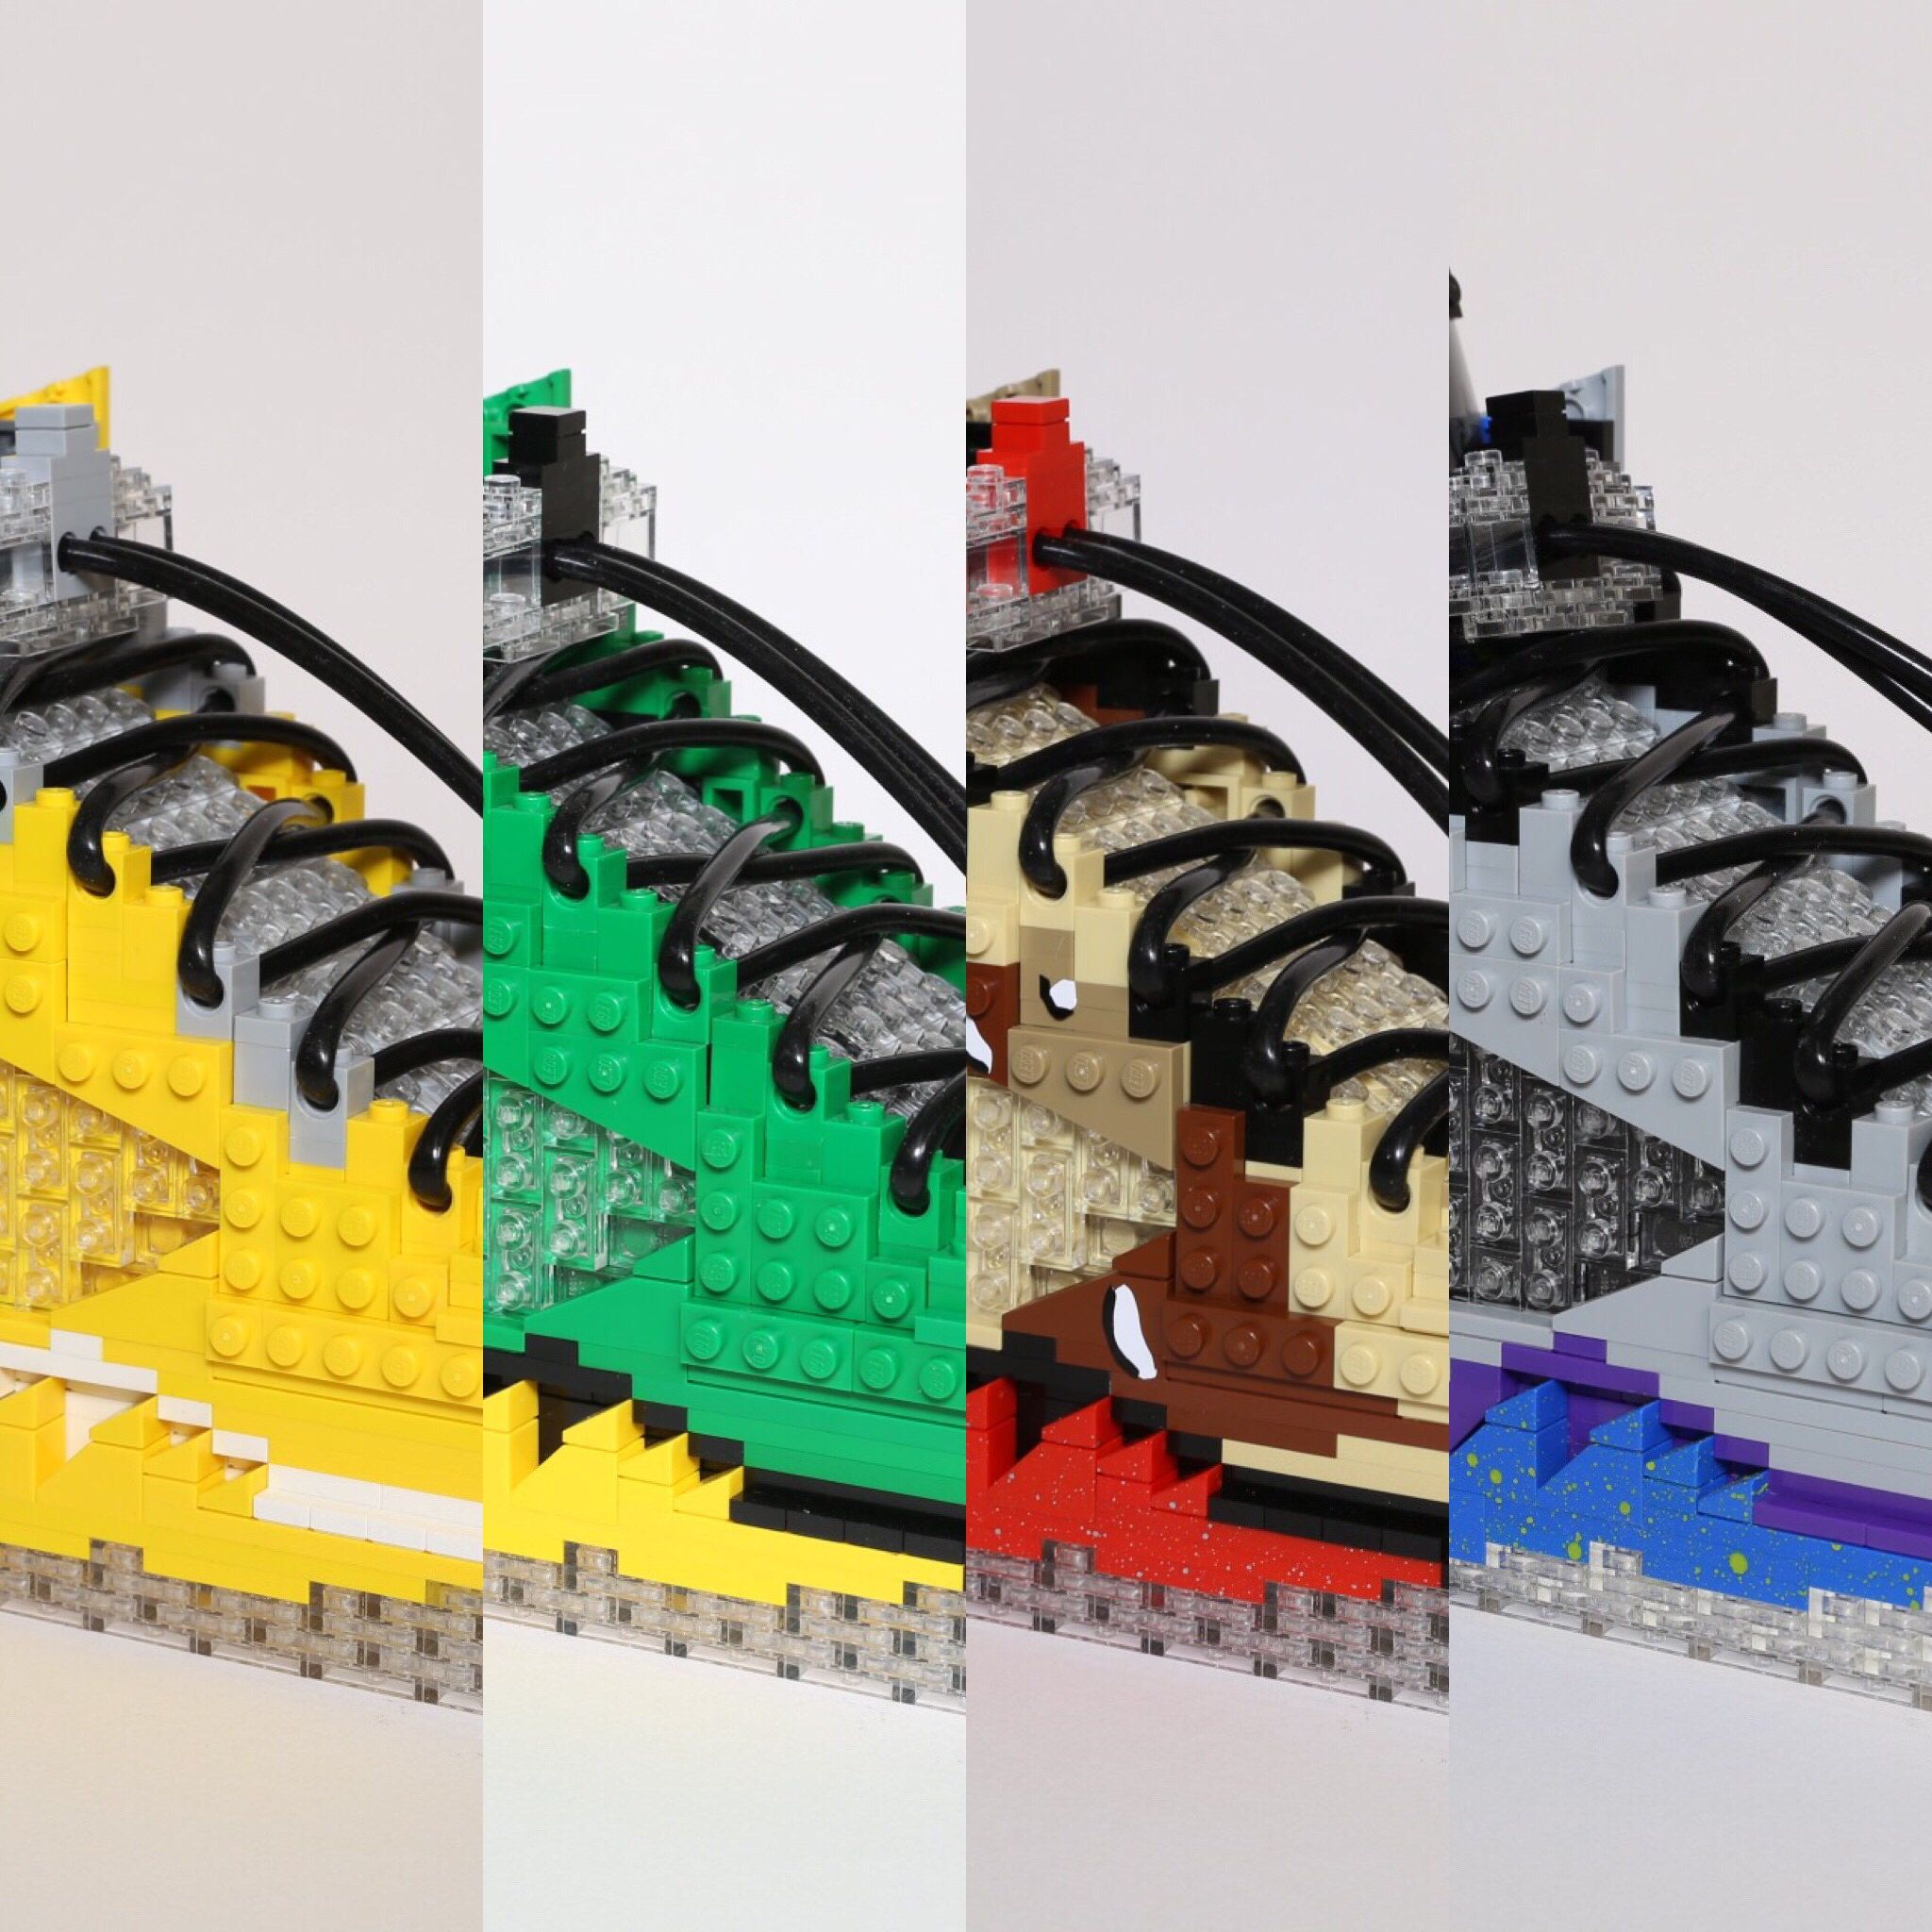 Air Jordans by LEGO Would Be The Next Big Thing For Sneakerheads ... d066983d6